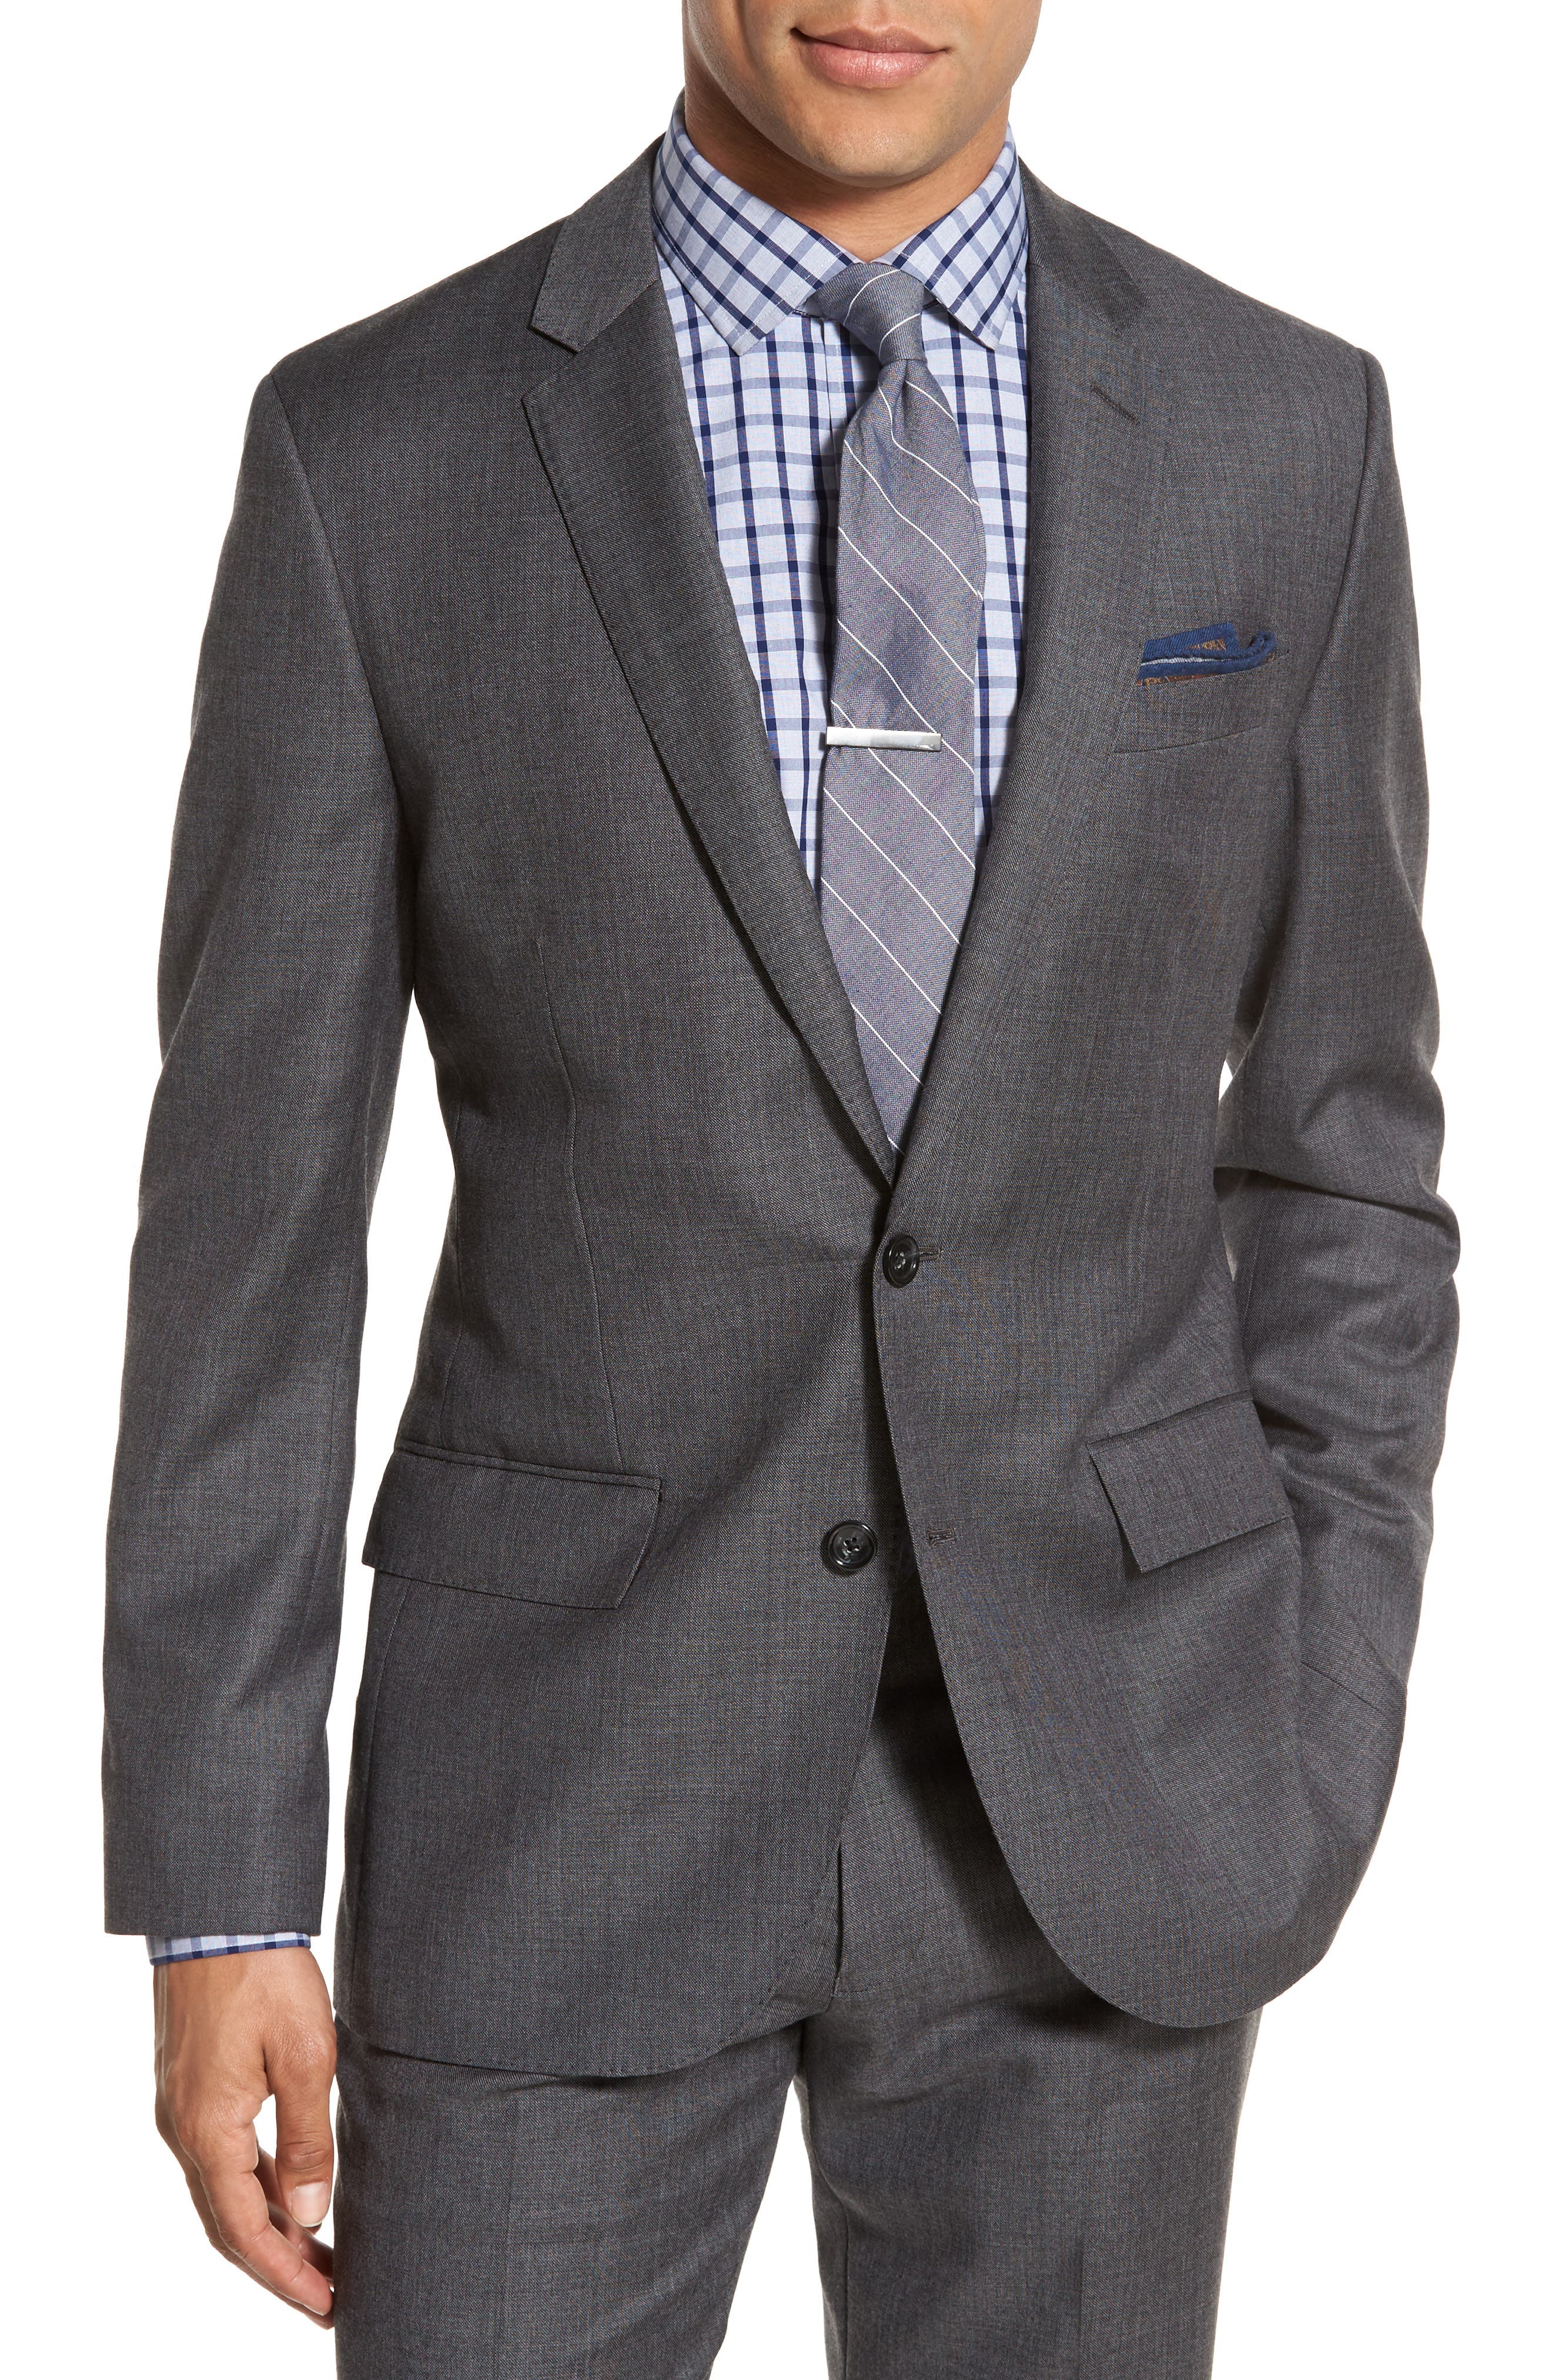 J.Crew Ludlow Trim Fit Solid Wool Sport Coat,                         Main,                         color, Charcoal